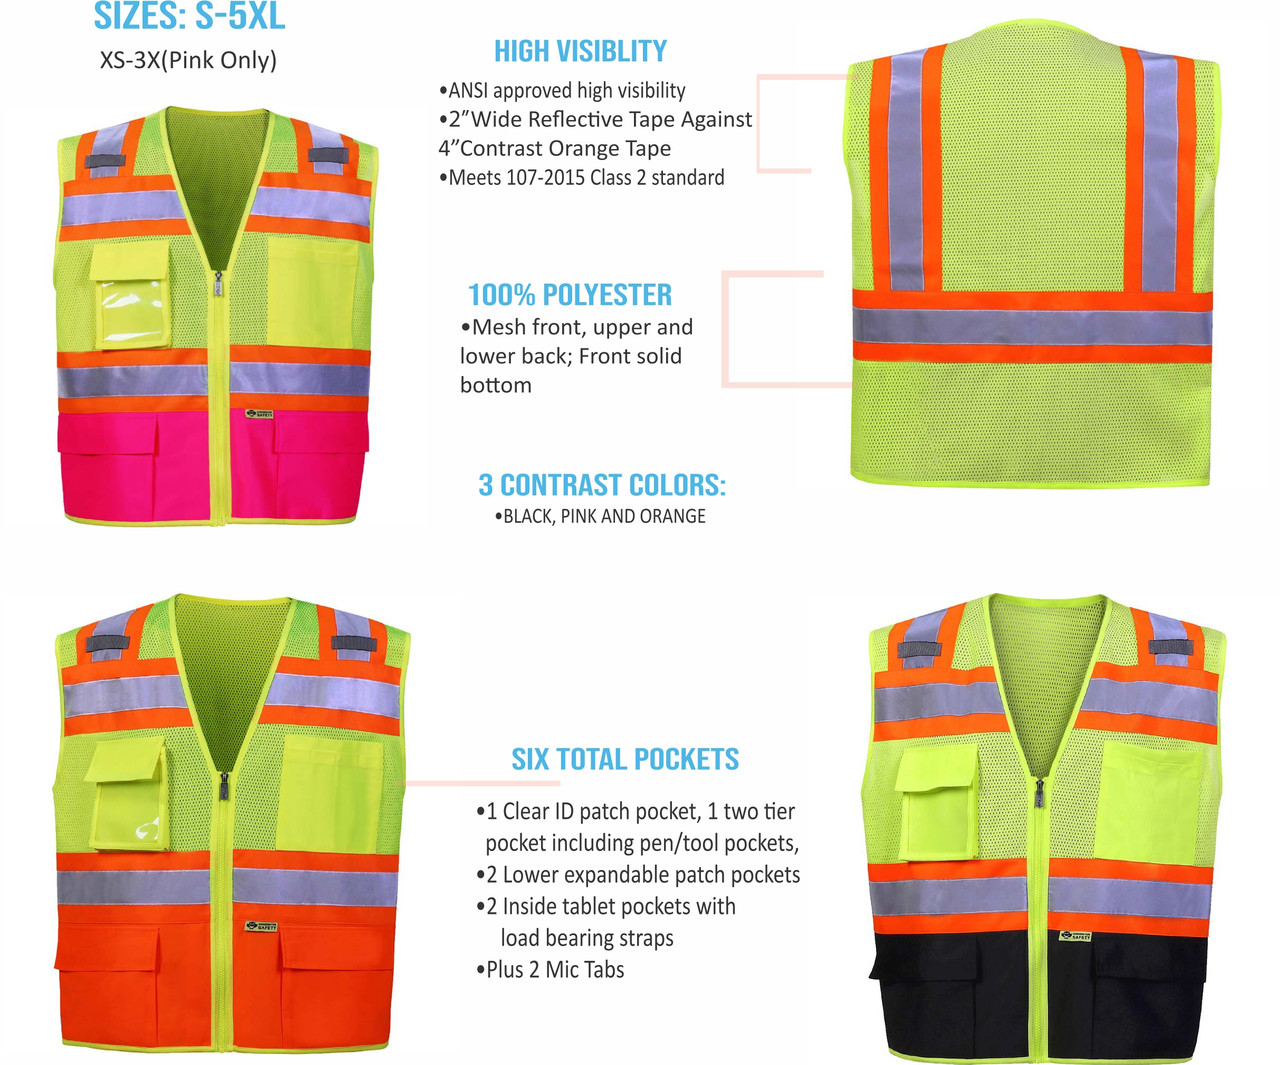 """2W 570 ANSI Approved High Visibility Class 2 Safety Vest is available in multiple colors and features 2"""" wide Reflective stripes, Contrast Orange Tape, Meets 107-2015 Class 2 Standard, Mesh Front and solid bottom.  Has 6 pockets and 2 mic tabs."""